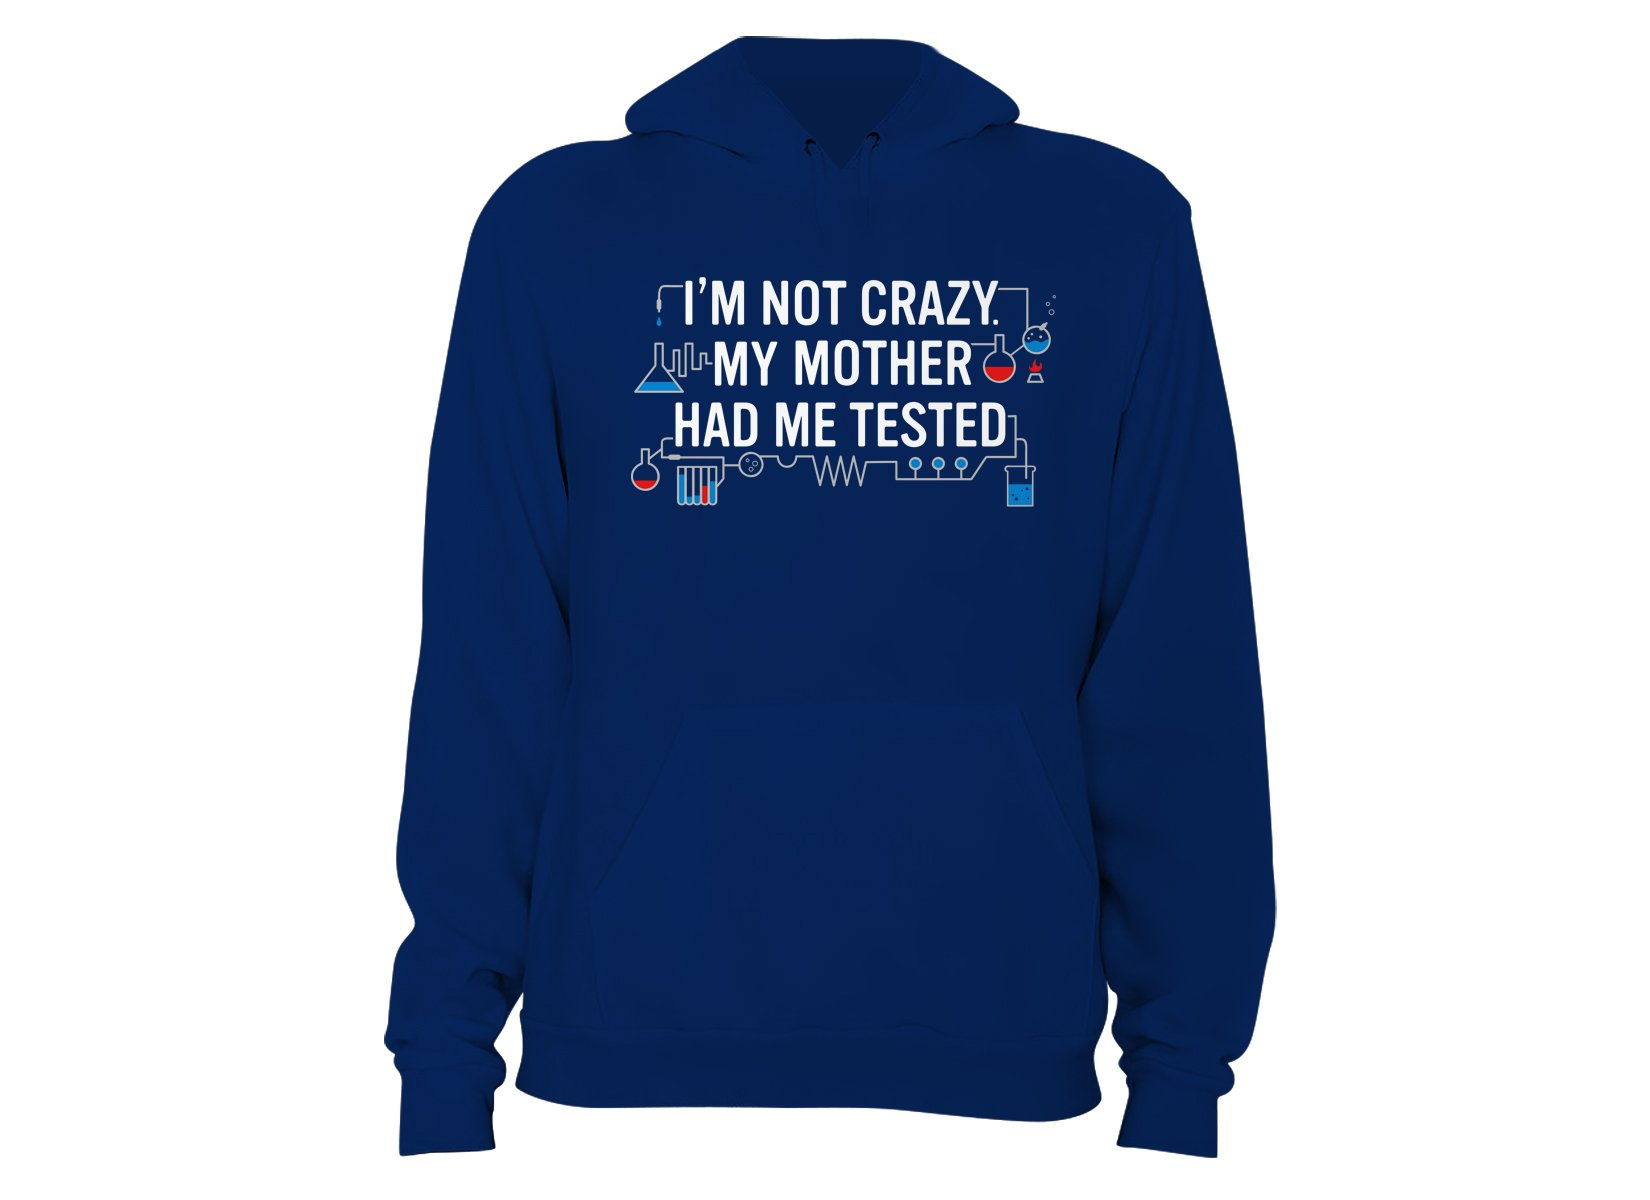 I'm Not Crazy. My Mother Had Me Tested. on Hoodie